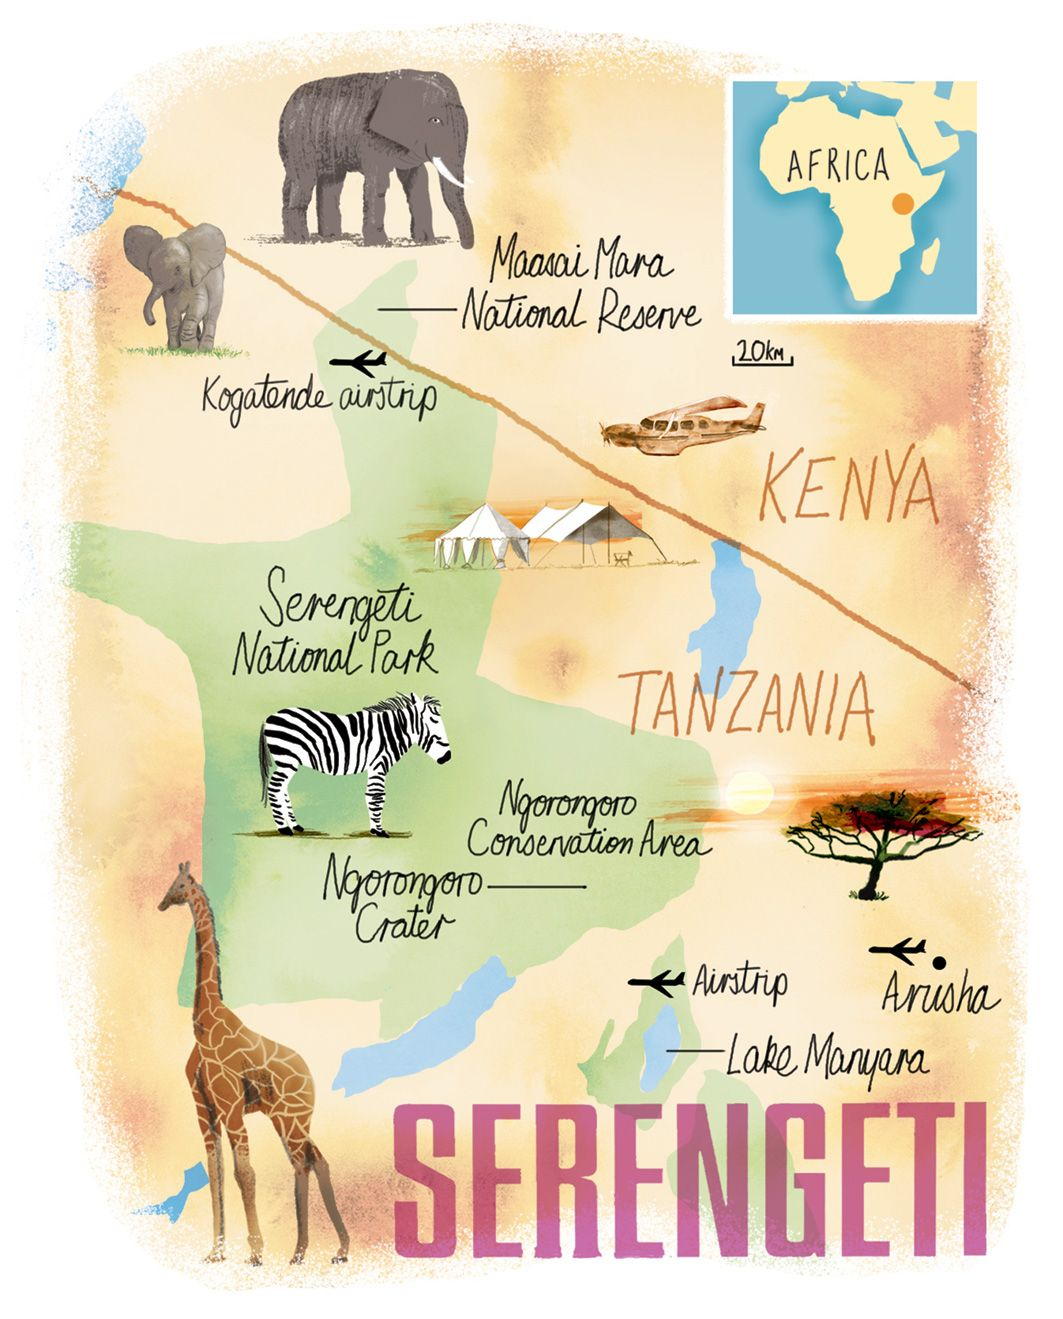 Serengeti Map By Scott Jessop Map Illustrated Map The Great Migration